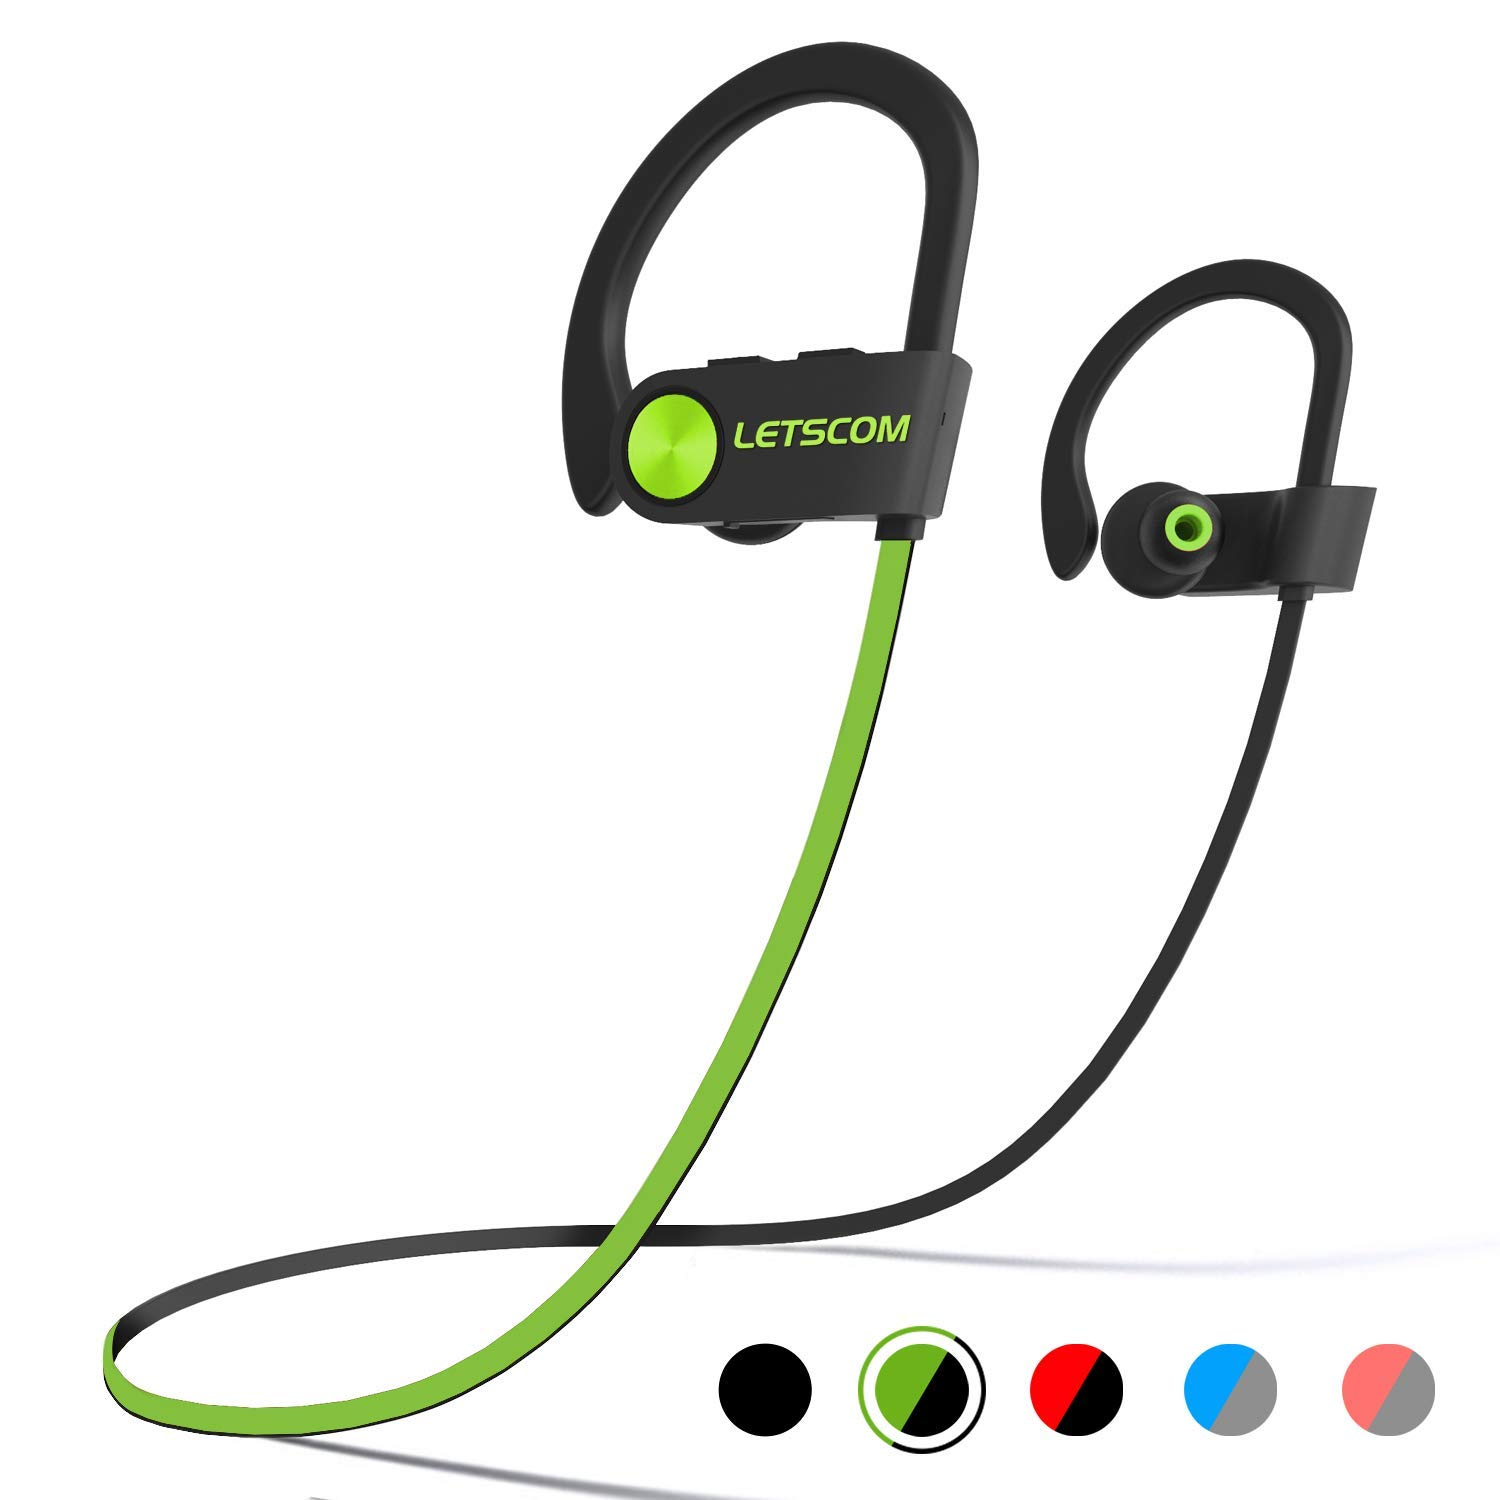 Letscom Bluetooth Earbuds